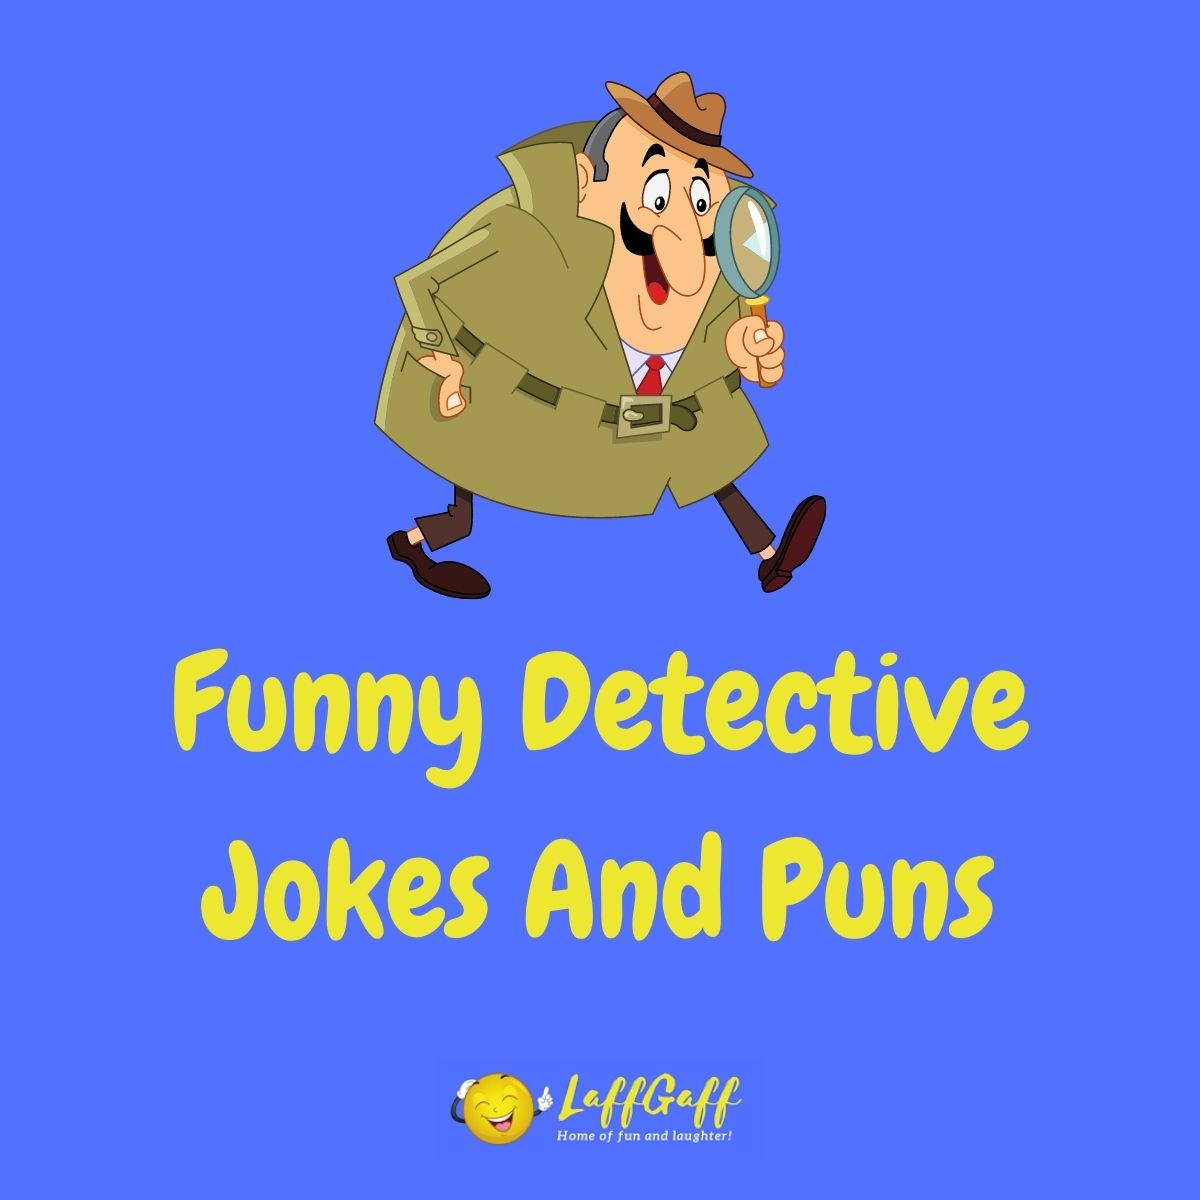 Featured image for a page of funny detective jokes and puns.